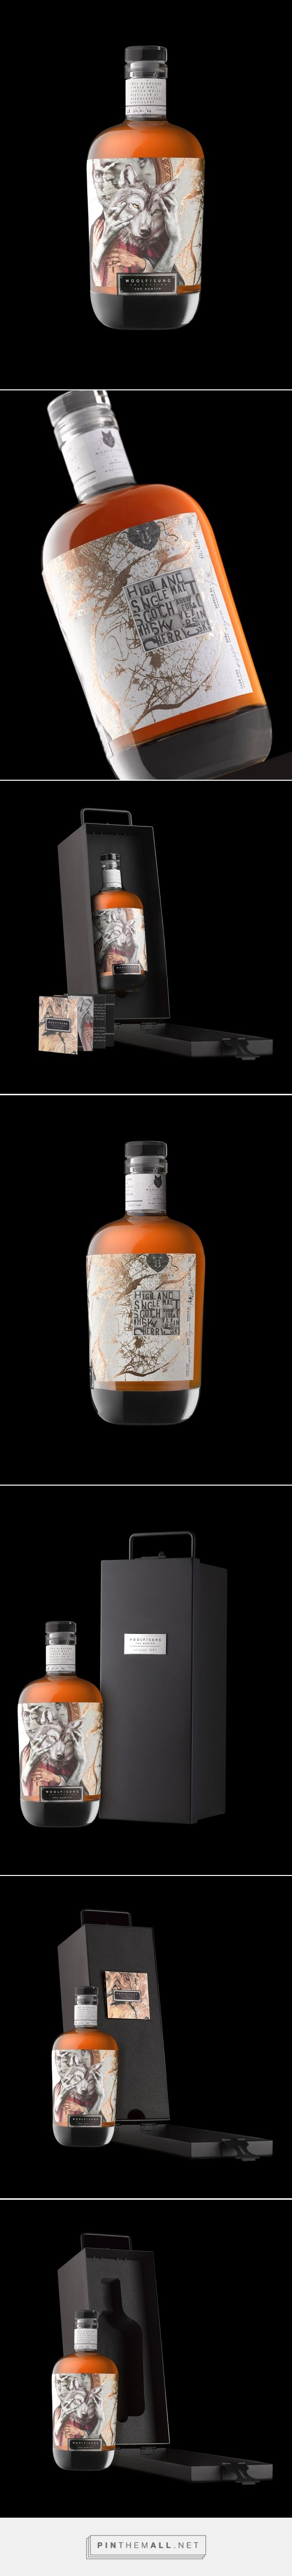 Woolf Sung whiskey packaging design by Stranger & Stranger - http://www.packagingoftheworld.com/2017/10/woolf-sung.html